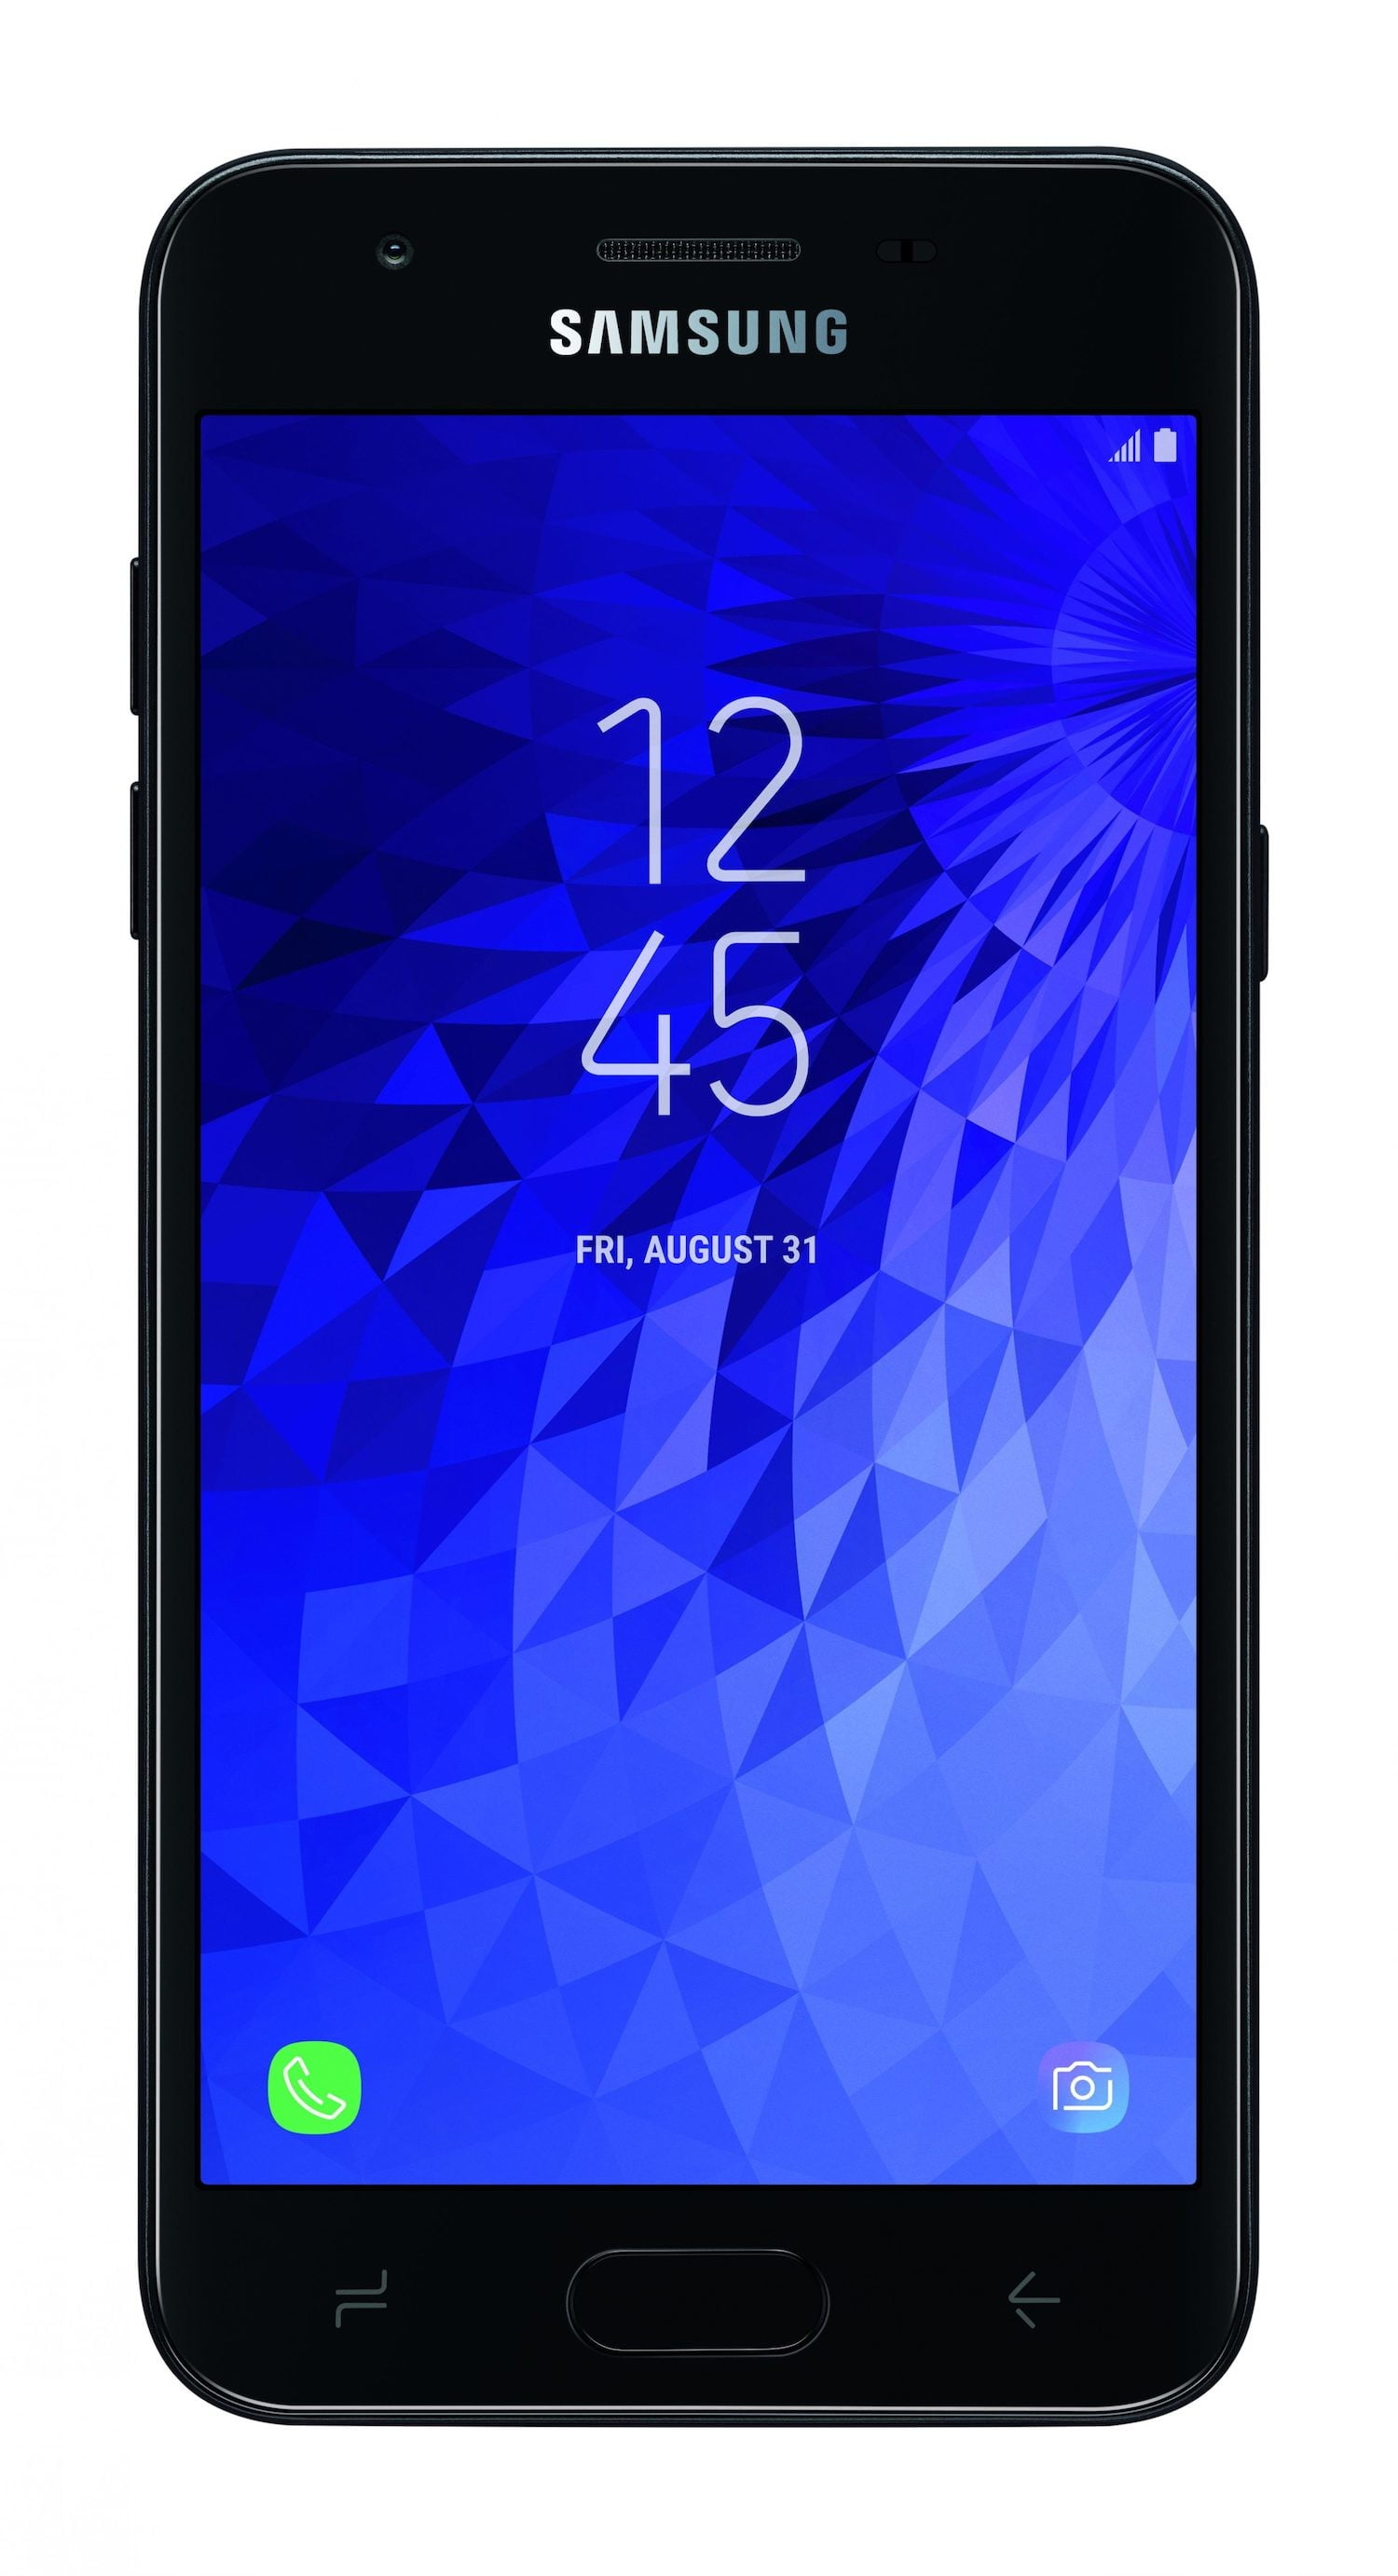 samsung galaxy j7 galaxy j3 everything you need to know digital trends. Black Bedroom Furniture Sets. Home Design Ideas